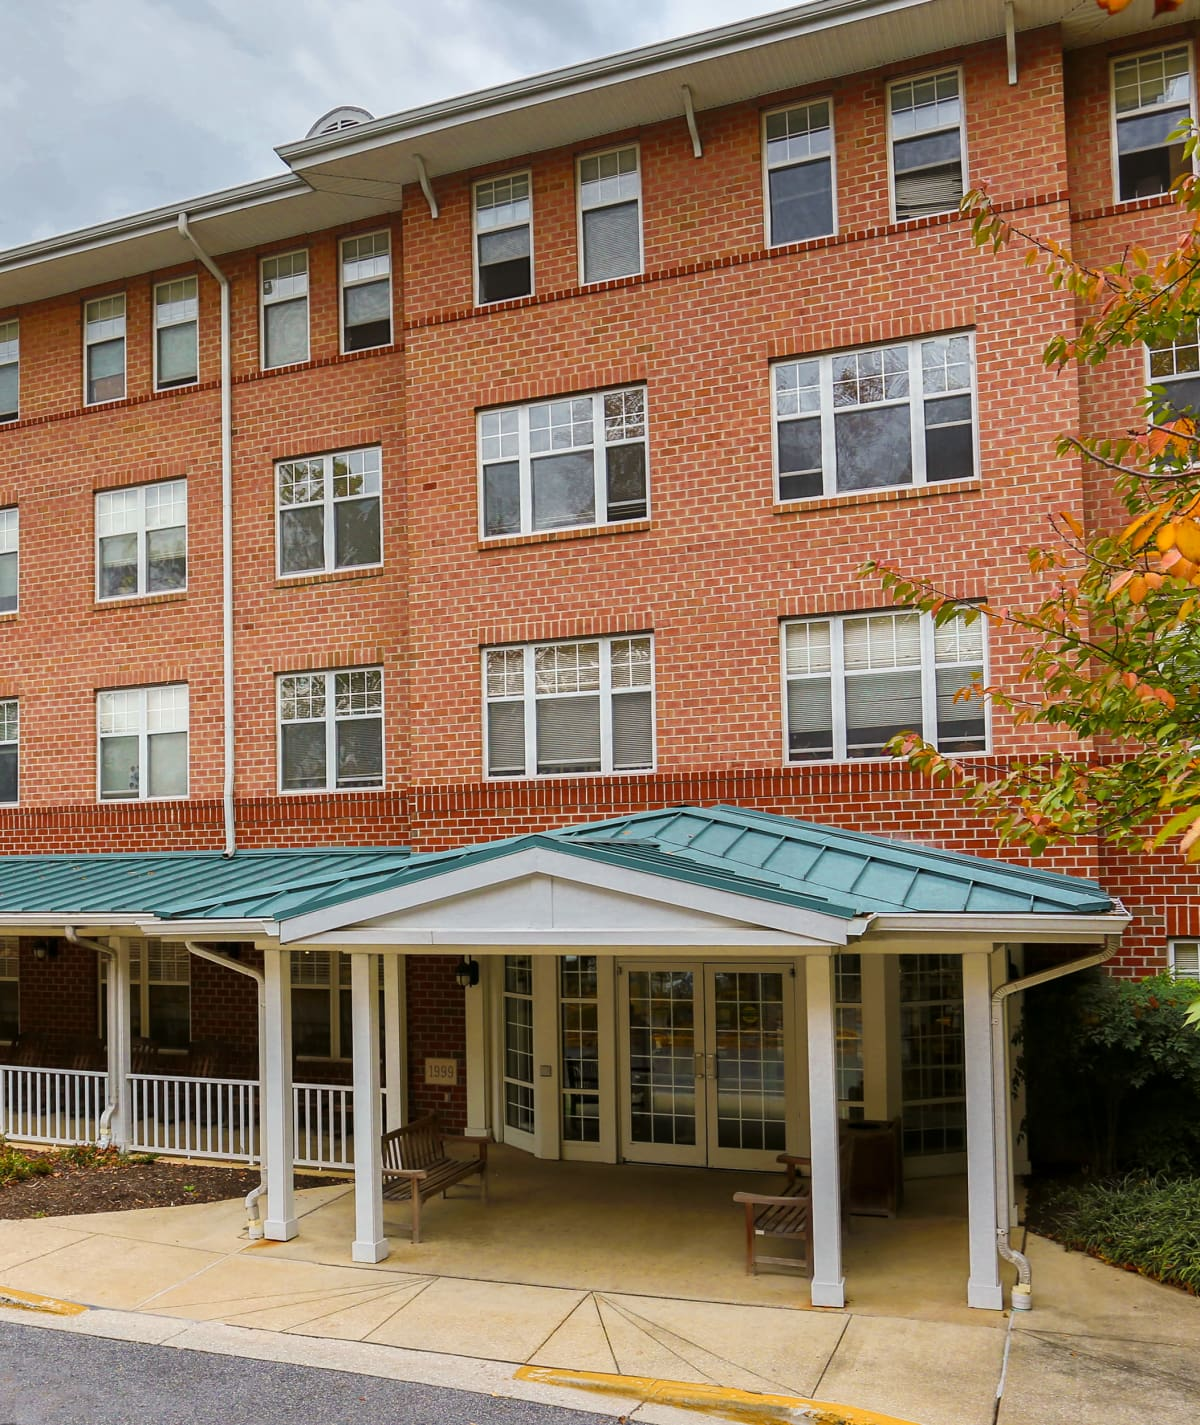 Apartments at Weinberg Woods in Baltimore, Maryland